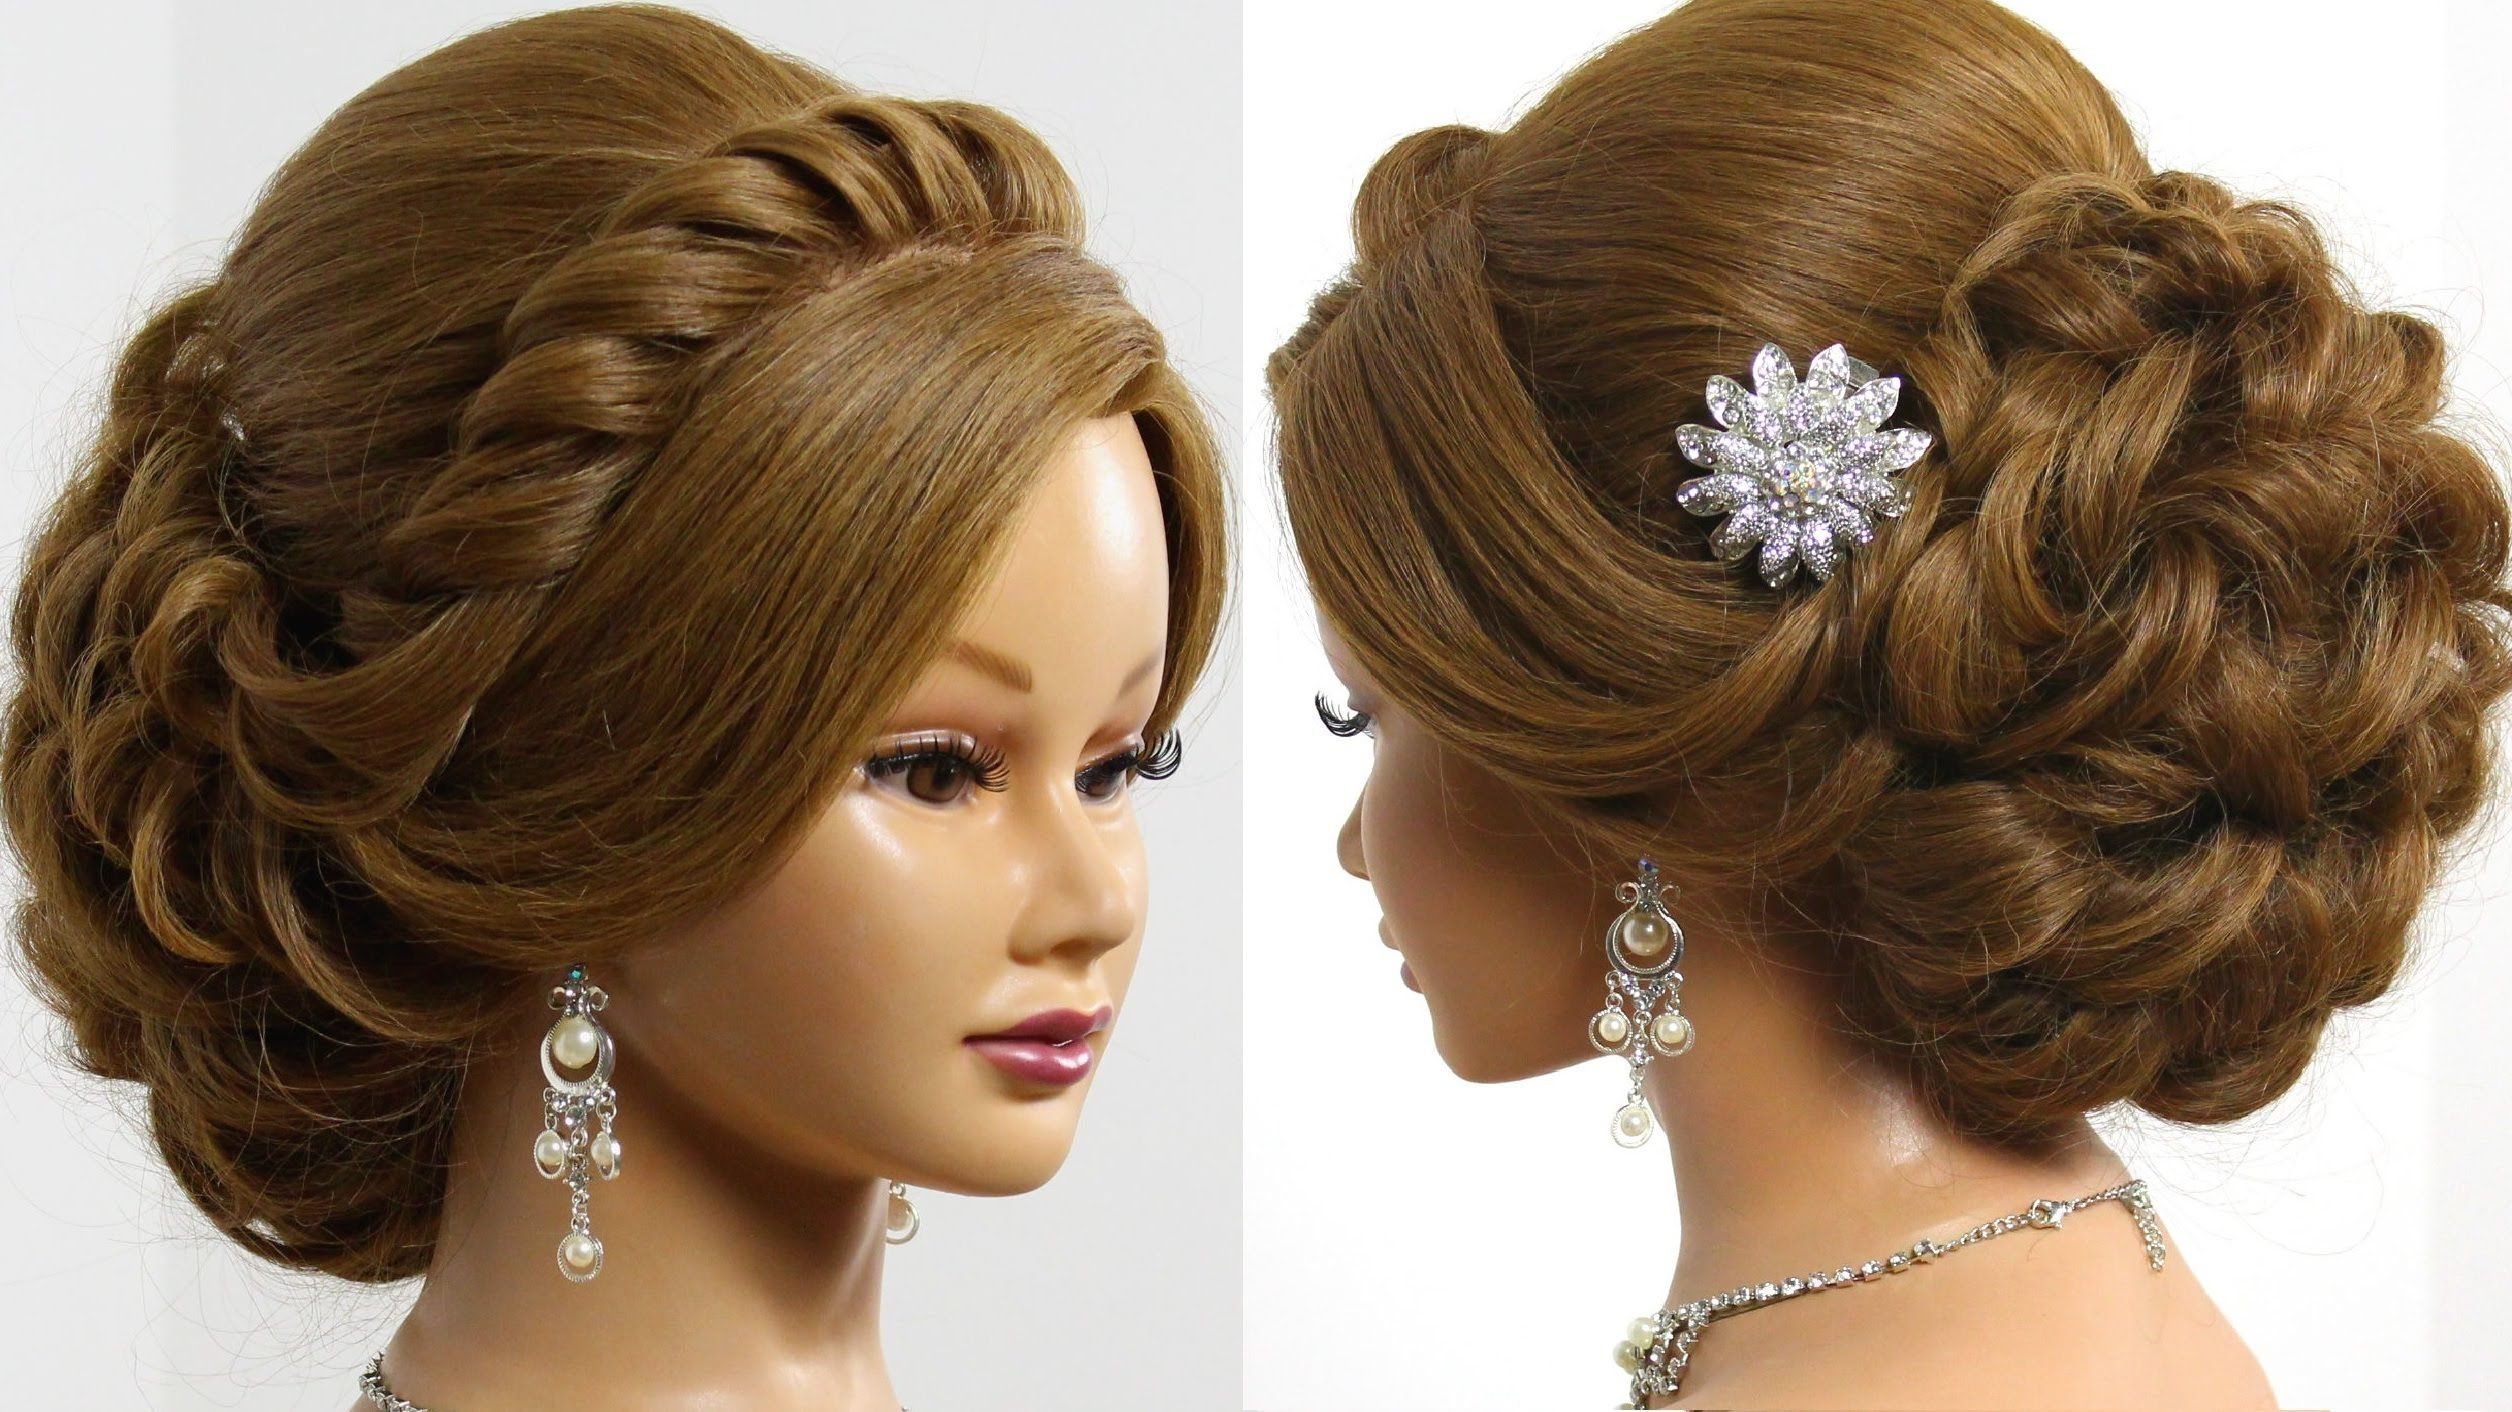 Hair accessories for updos hairstyles - Romantic Hairstyle For Long Medium Hair Tutorial